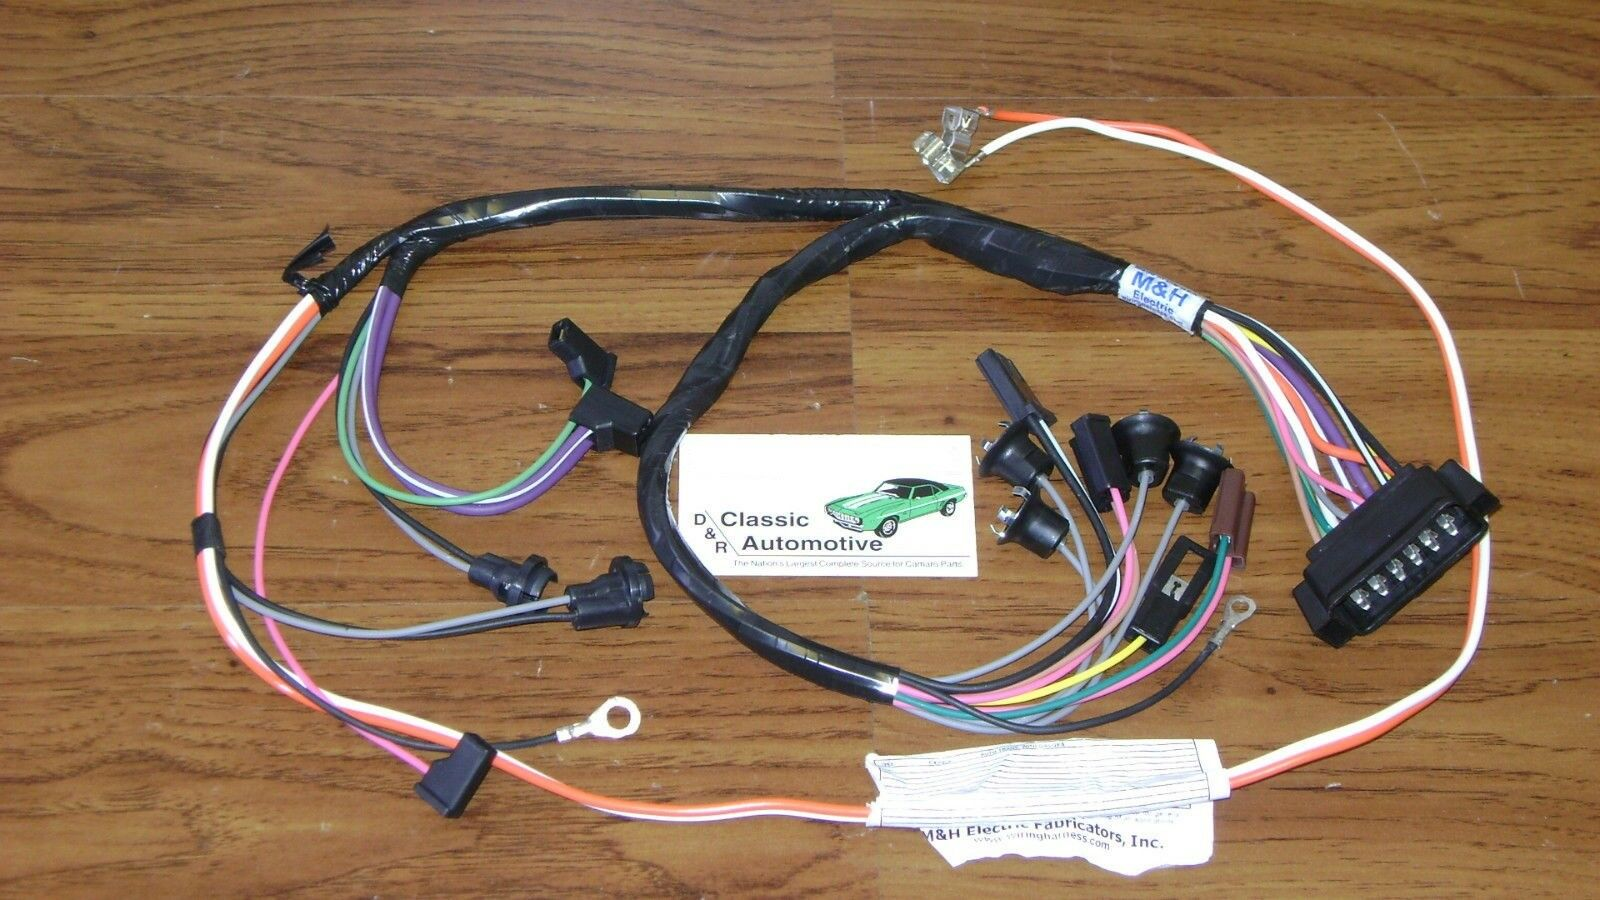 console wiring harness made in usa 68 69 camaro automatic 1971 chevelle wiring harness 1 of 6only 2 available console wiring harness made in usa 68 69 camaro automatic transmission